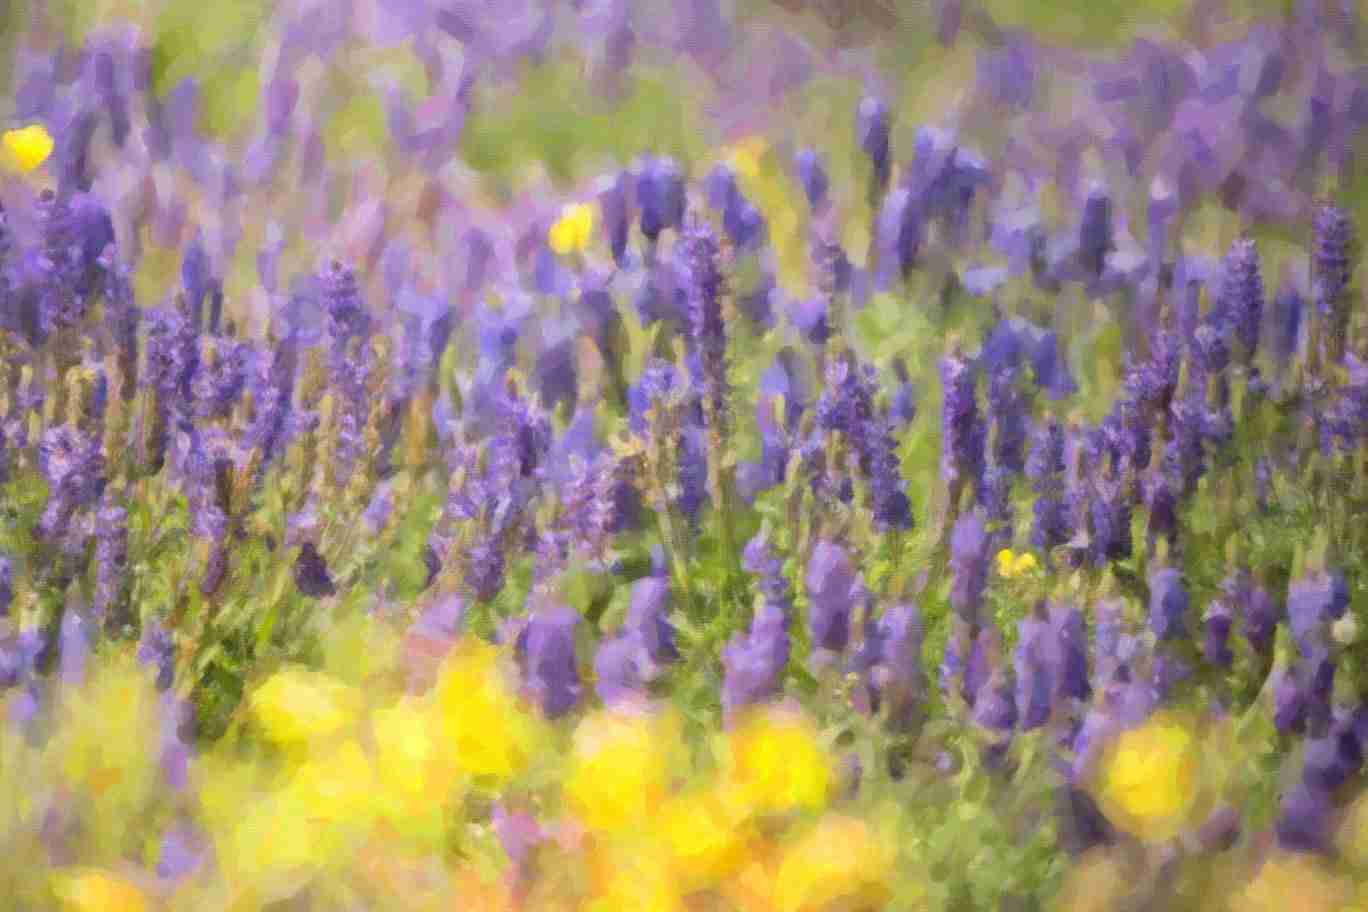 Print of a Field of Wild Purple Lavender